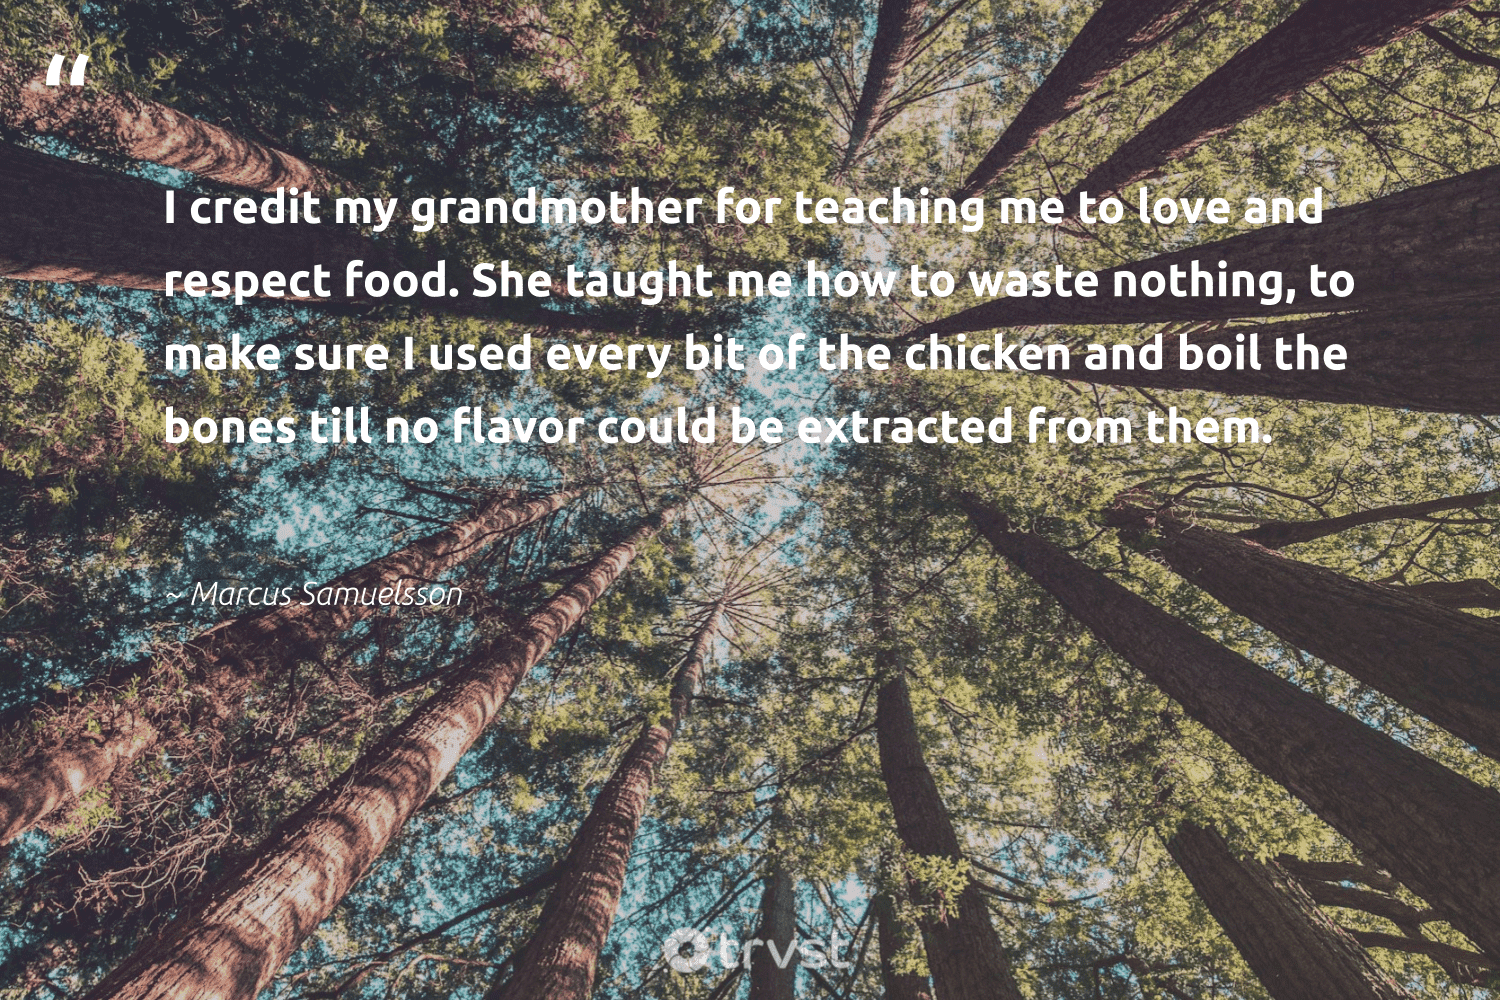 """""""I credit my grandmother for teaching me to love and respect food. She taught me how to waste nothing, to make sure I used every bit of the chicken and boil the bones till no flavor could be extracted from them.""""  - Marcus Samuelsson #trvst #quotes #love #waste #food #foodforthepoor #ecoactivism #sustainablefutures #dosomething #hunger #sustainability #makeadifference"""